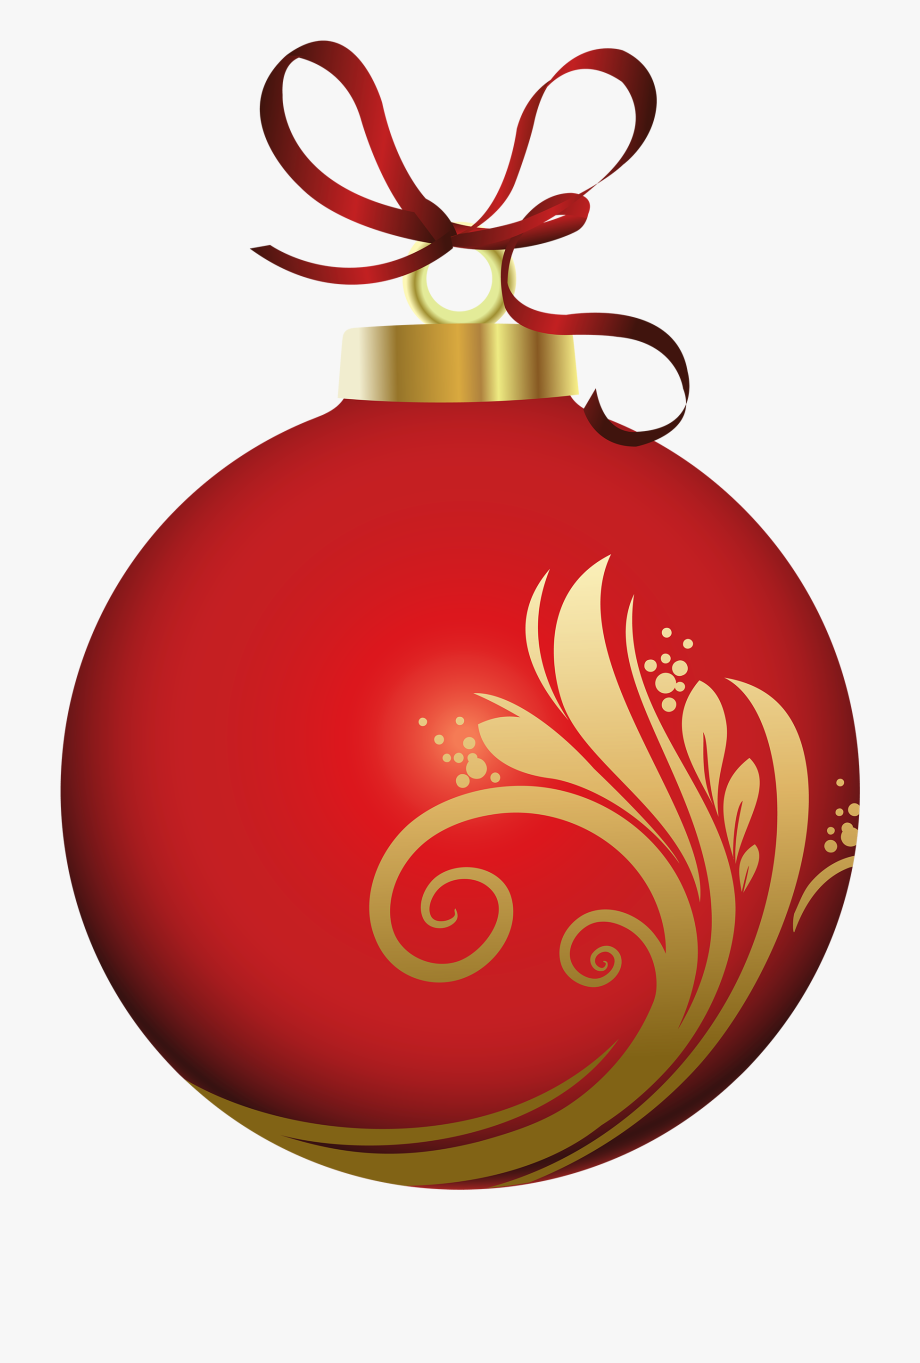 Red Christmas Ball With Decoration Png Clipart.